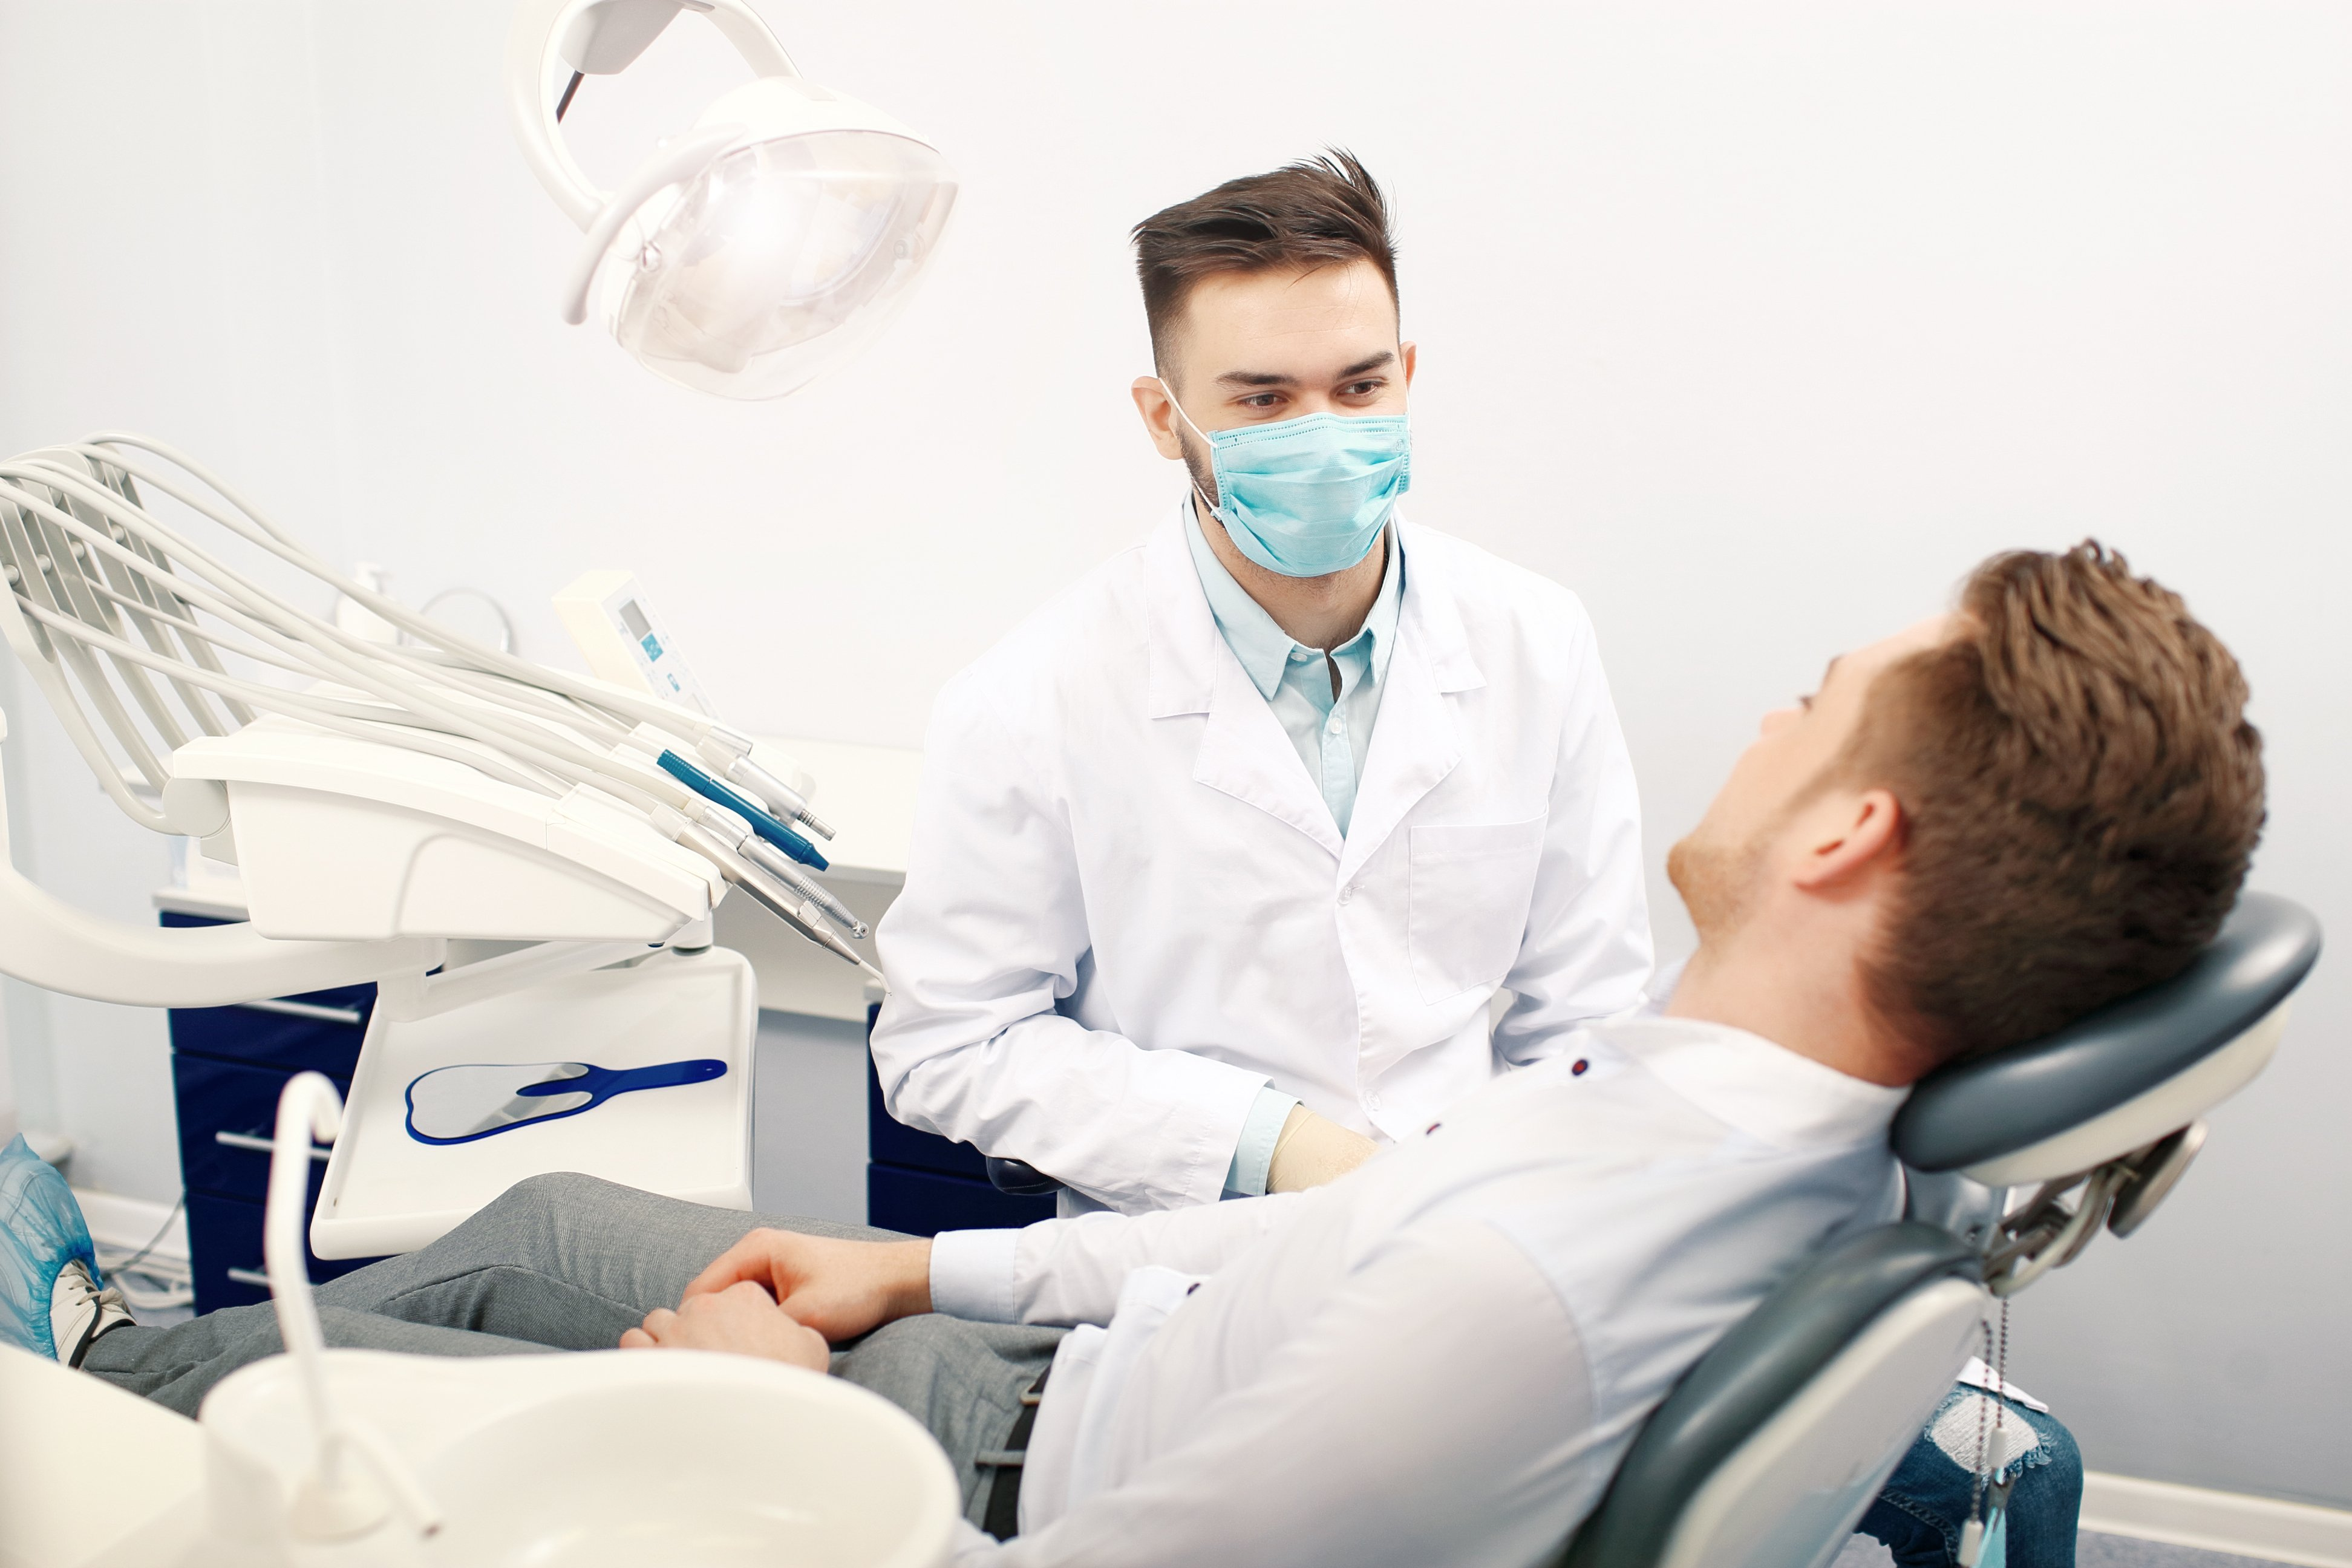 A young male dentist and a patient | Photo: Shutterstock.com